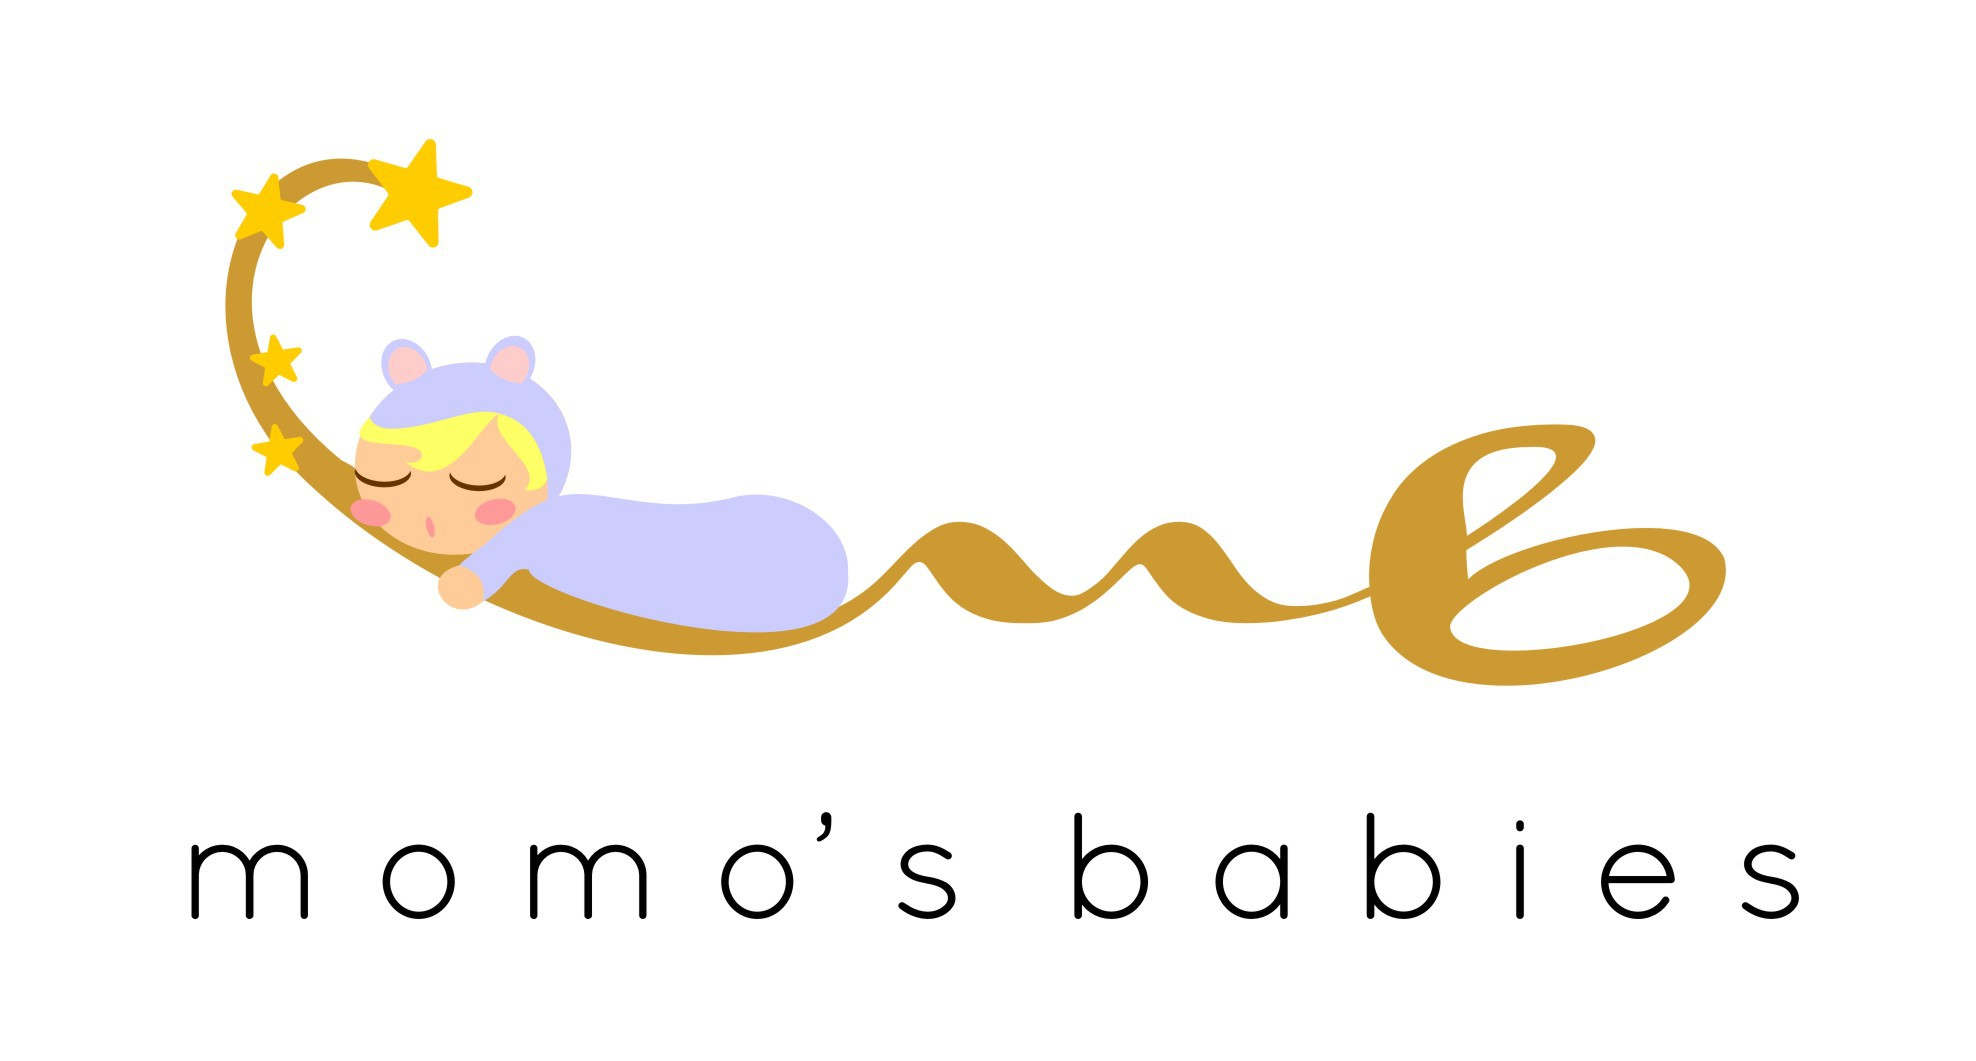 New logo wanted for Momo's Babies